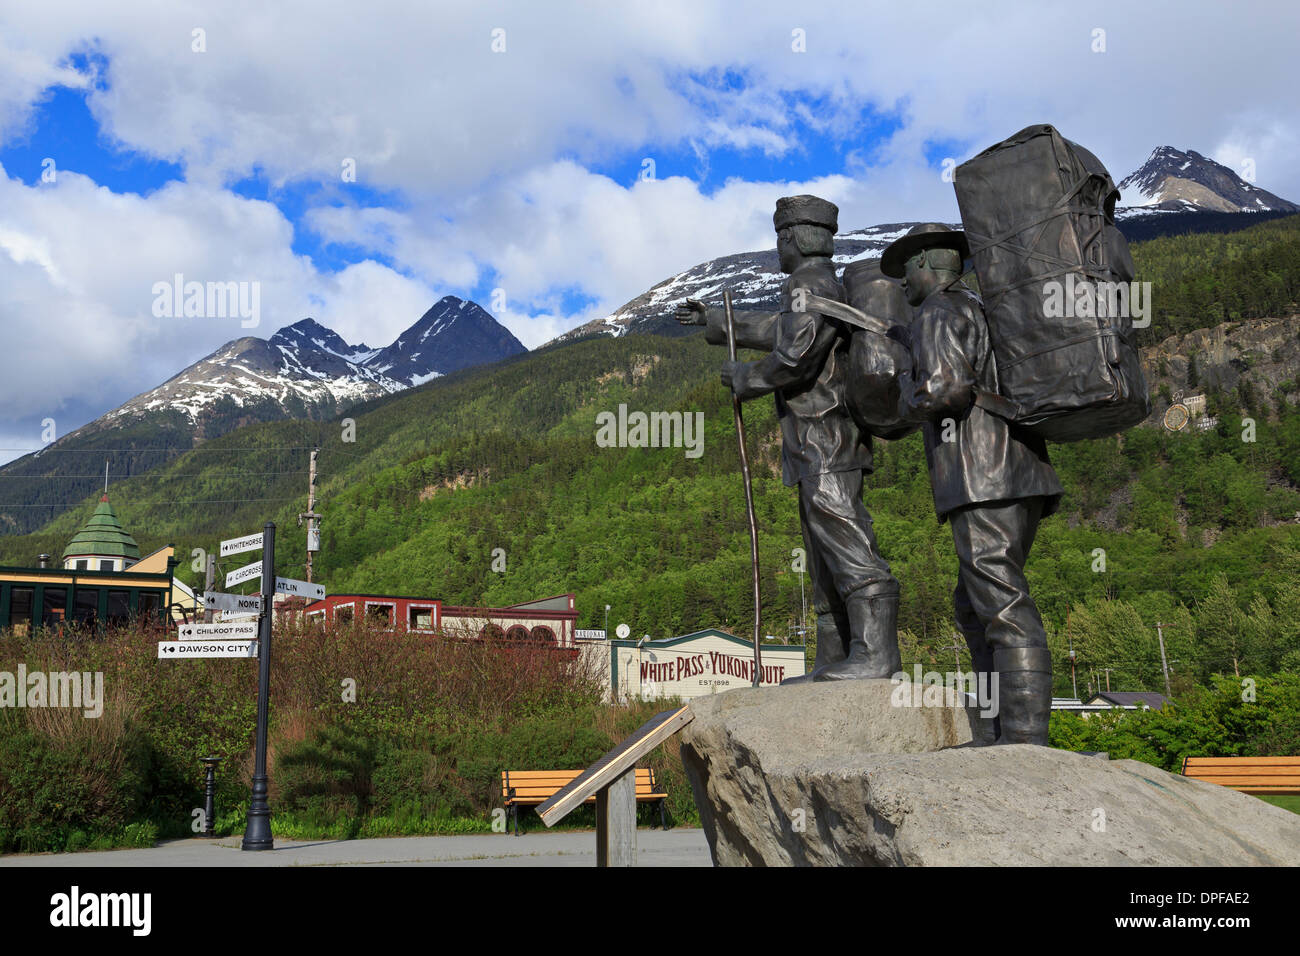 Prospector and Guide Monument, Skagway, Alaska, United States of America, North America - Stock Image